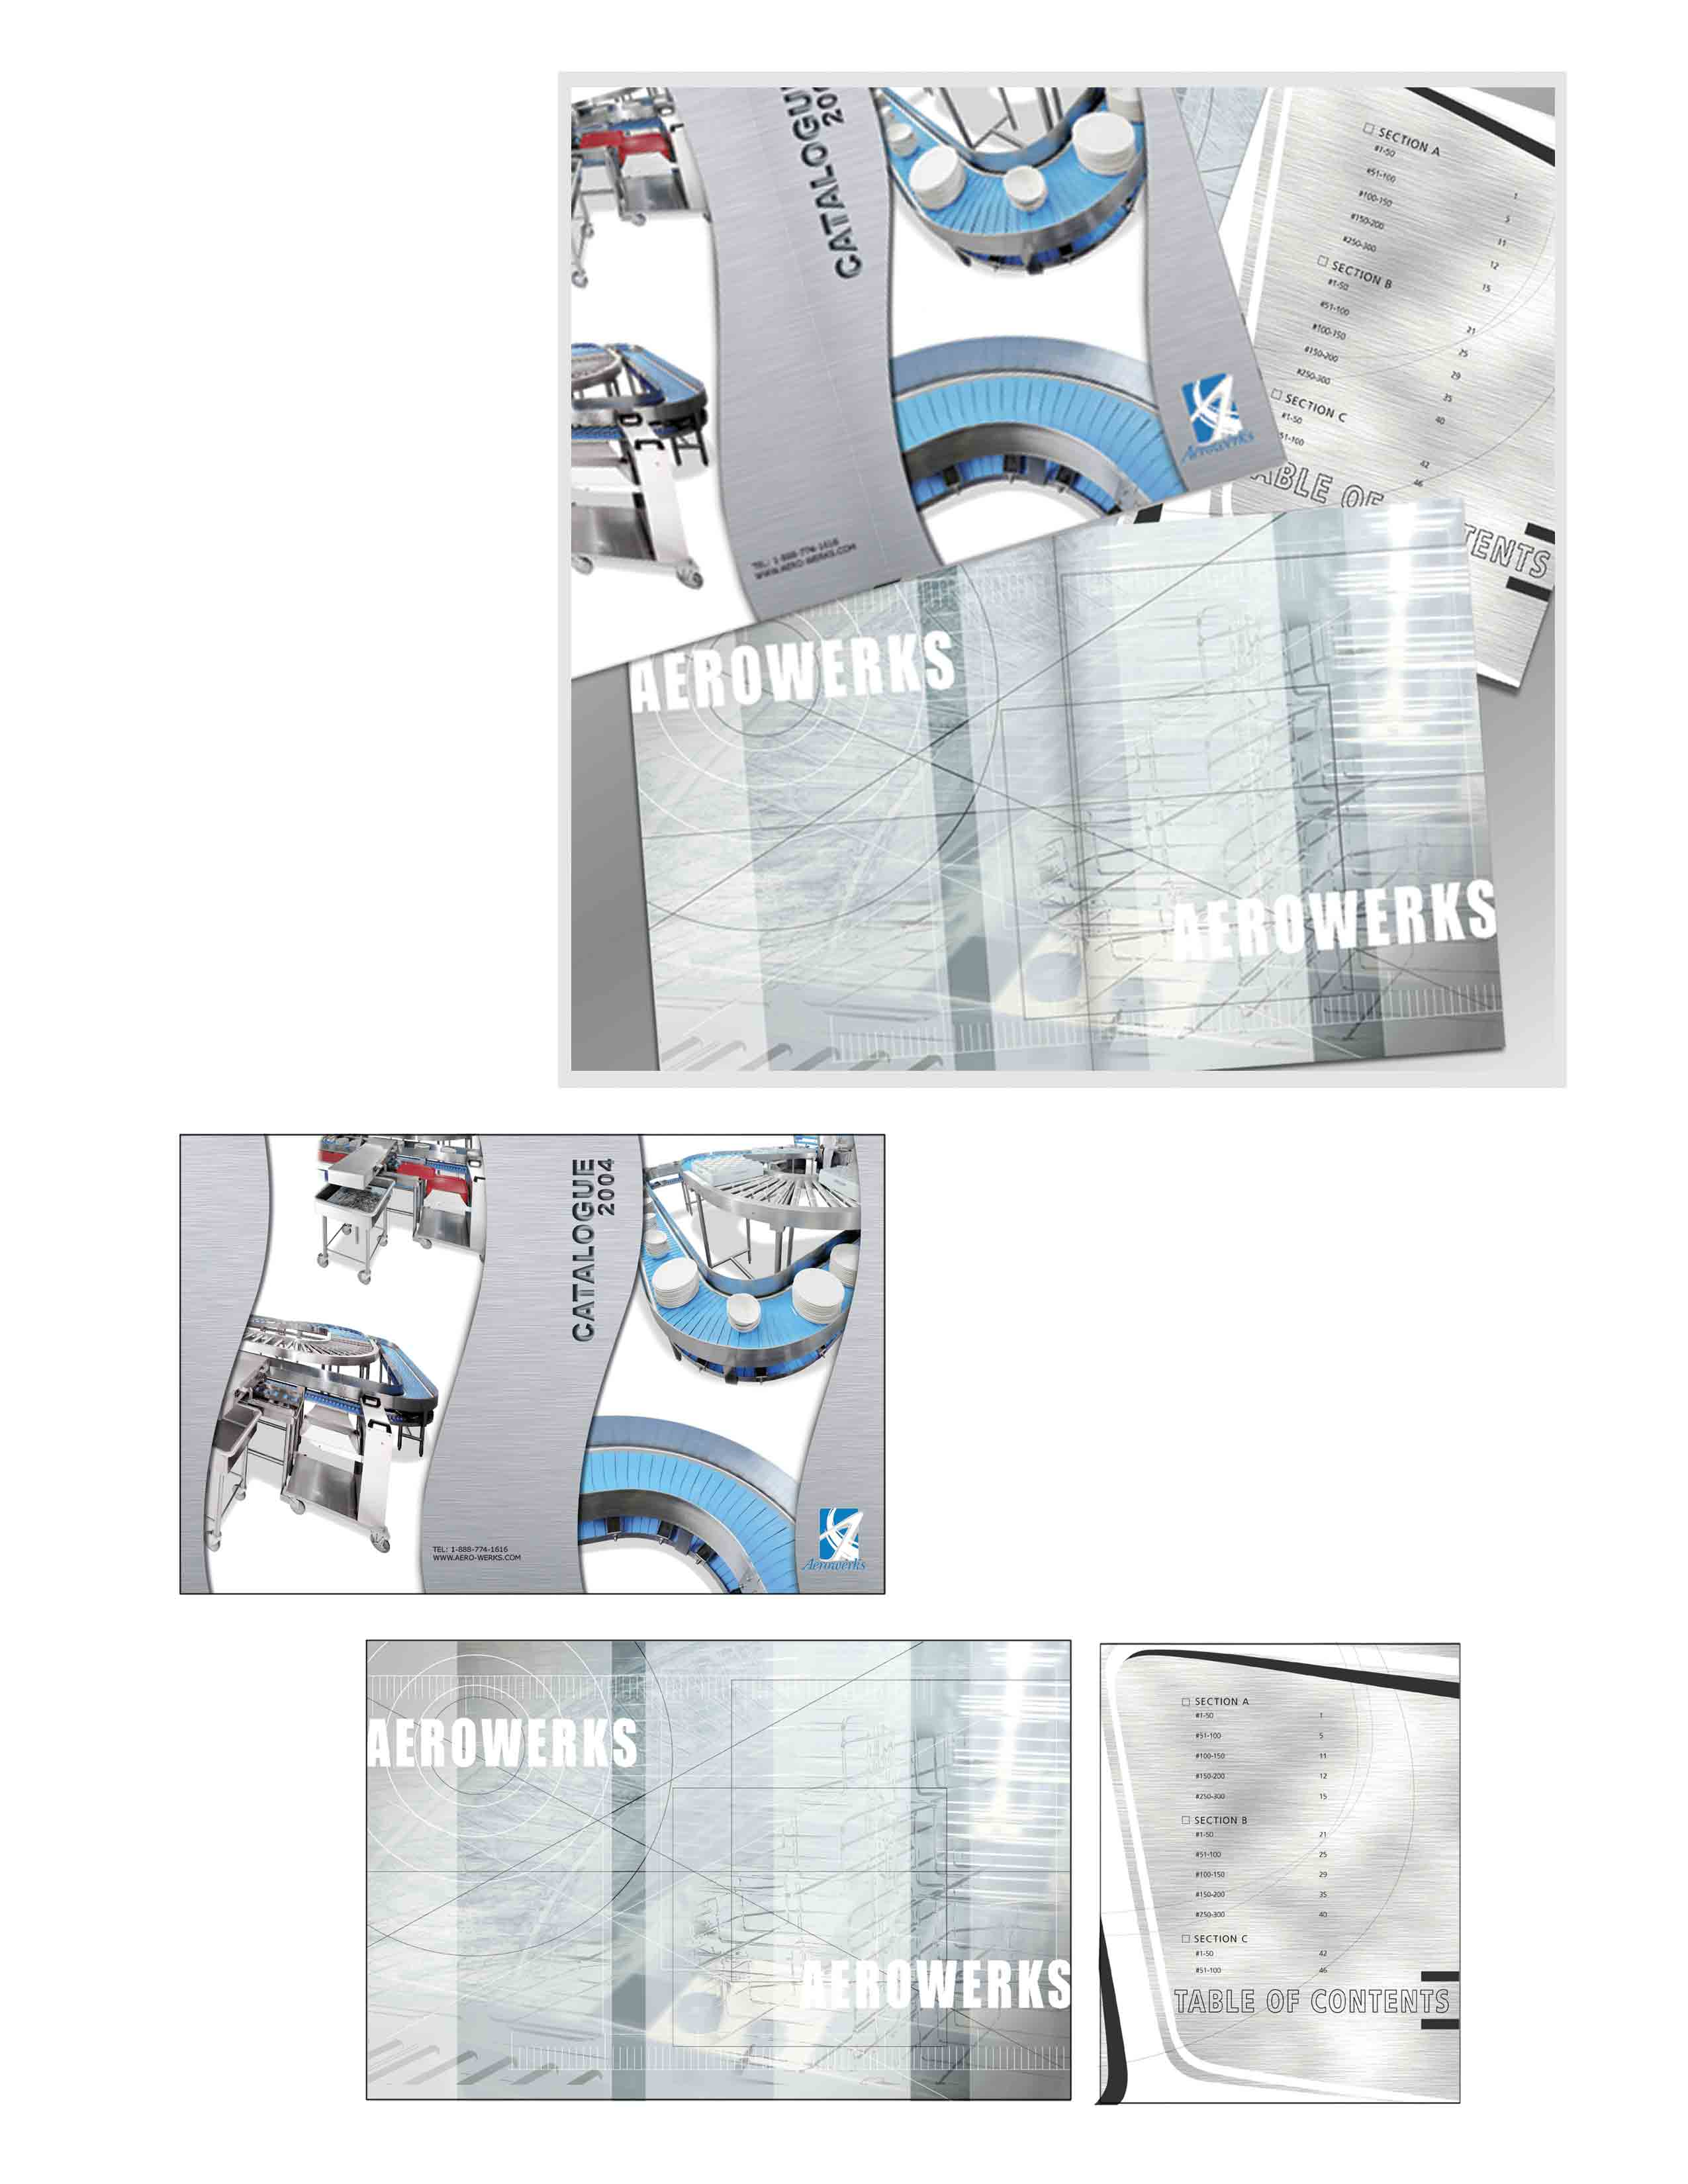 Catalogue Design for Aerowerks